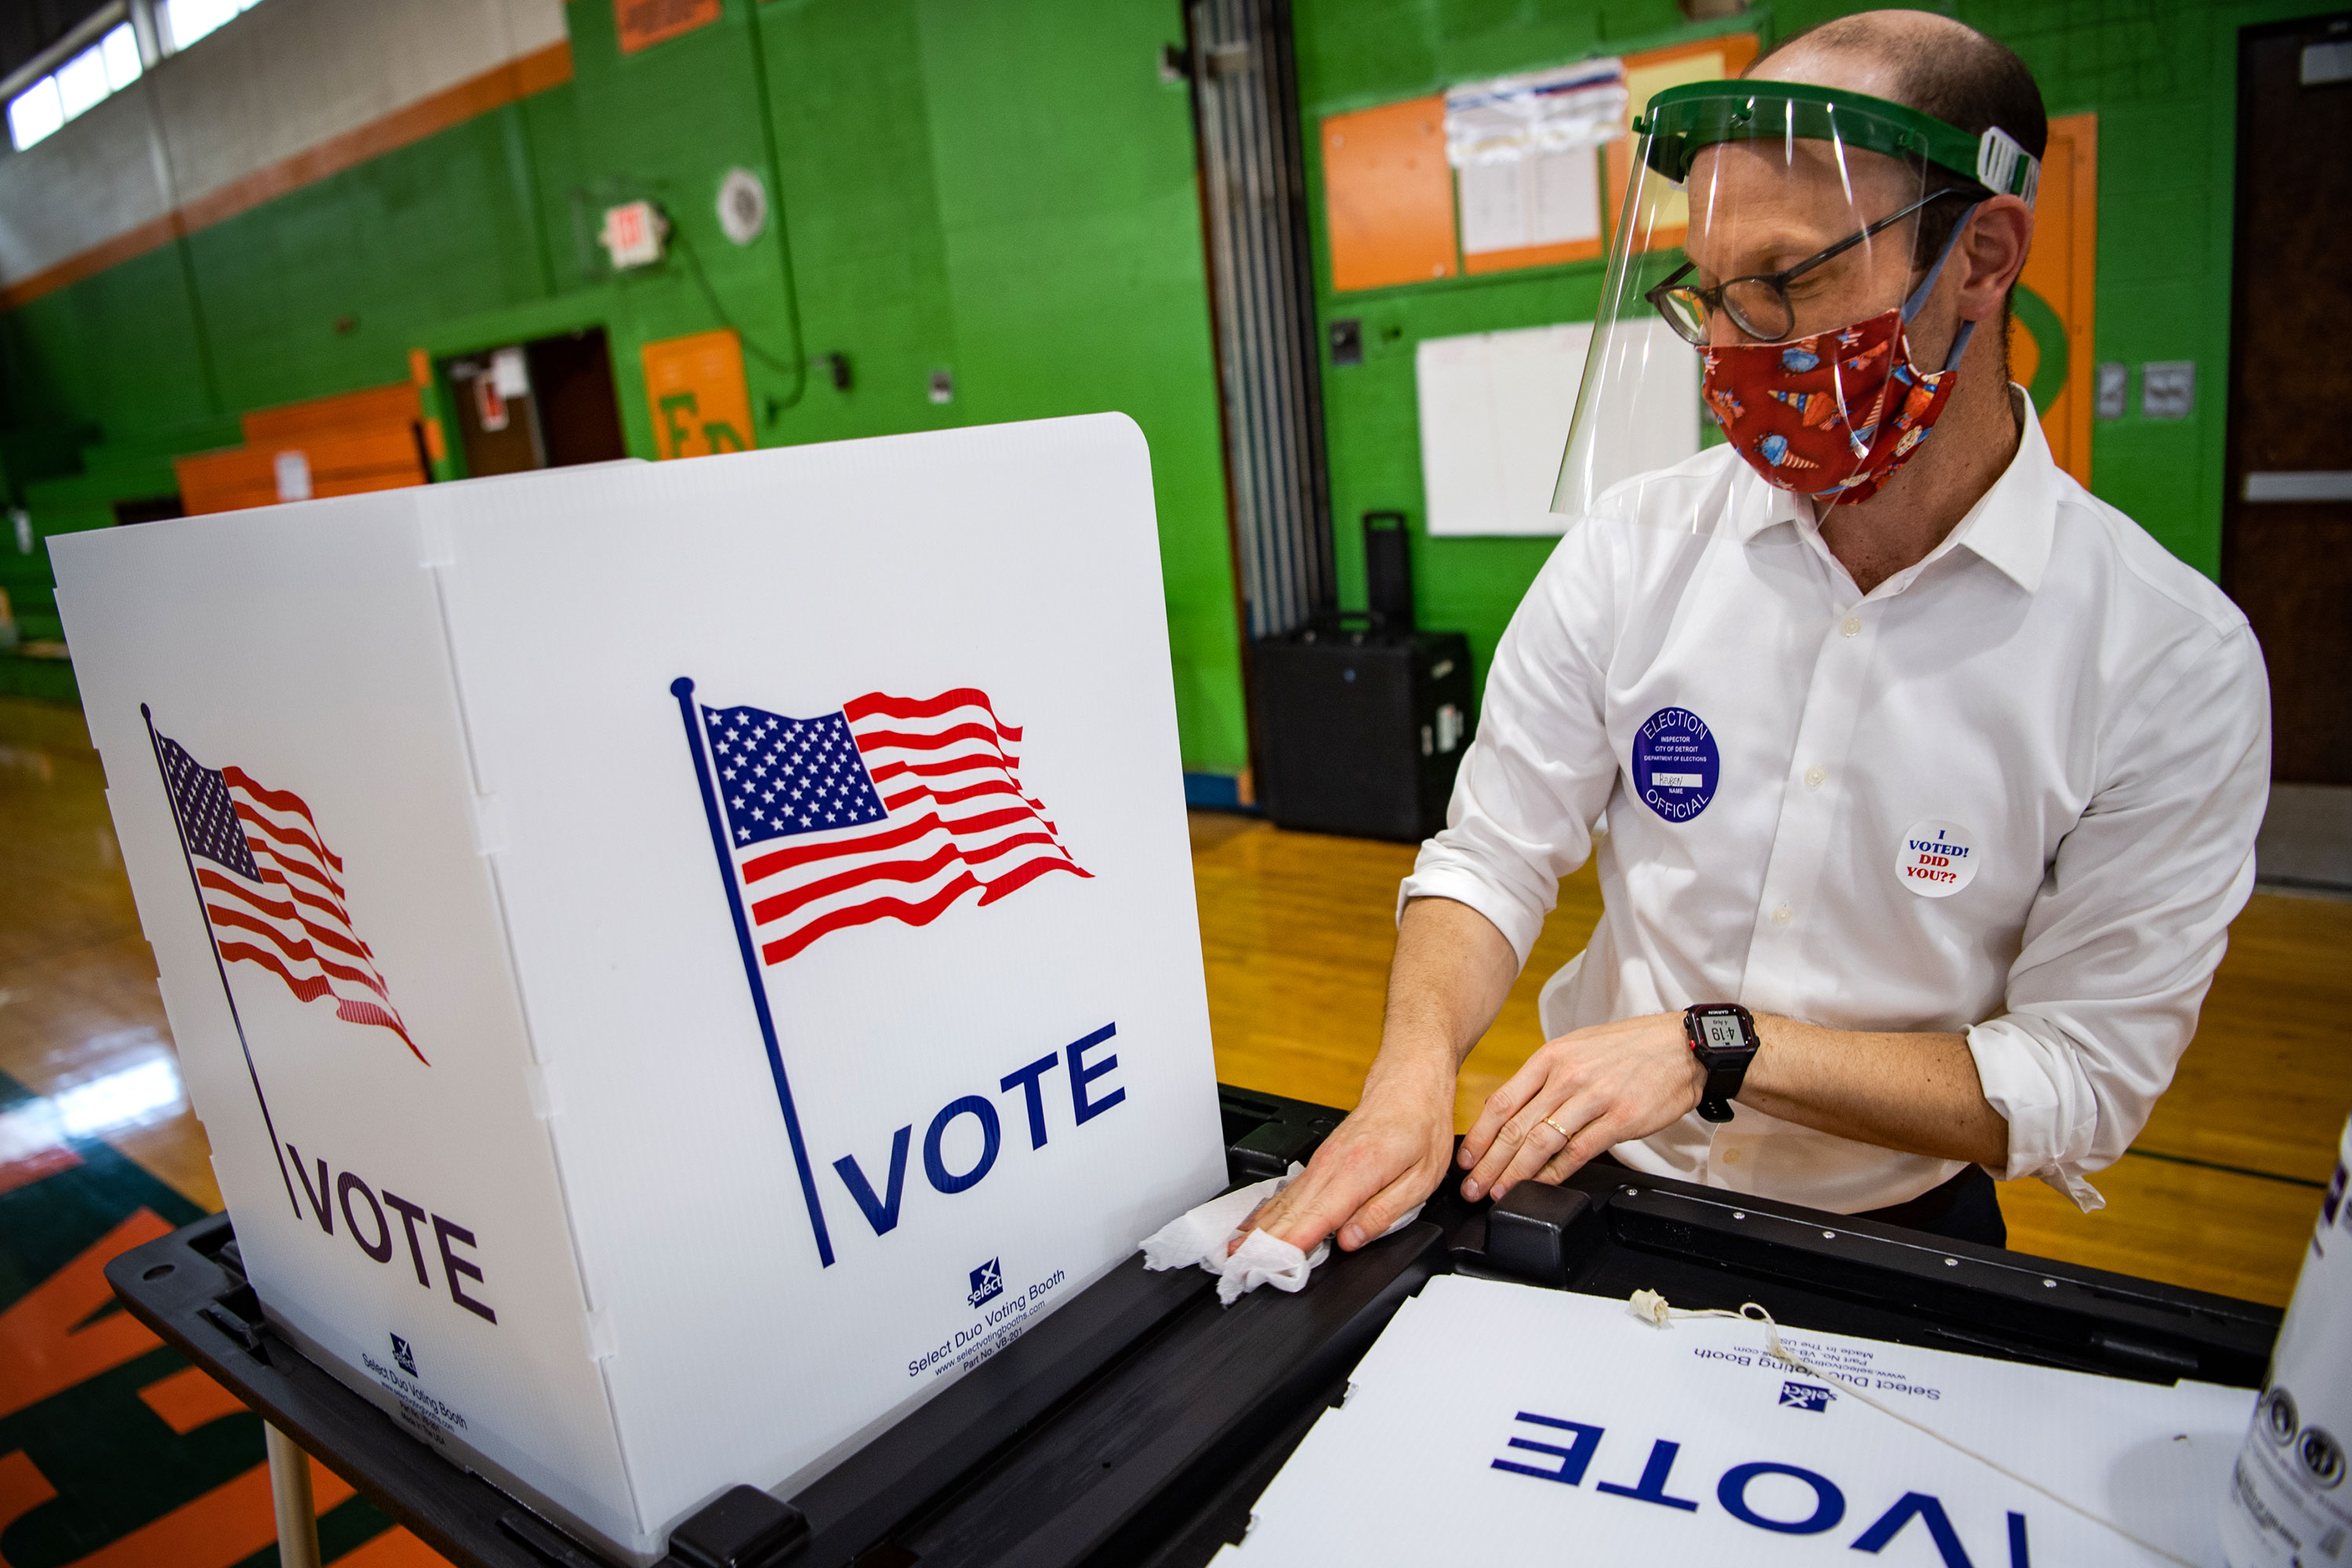 A volunteer disinfects a voting booth at a polling station during the Michigan Primary on August 4 in Detroit, Michigan.